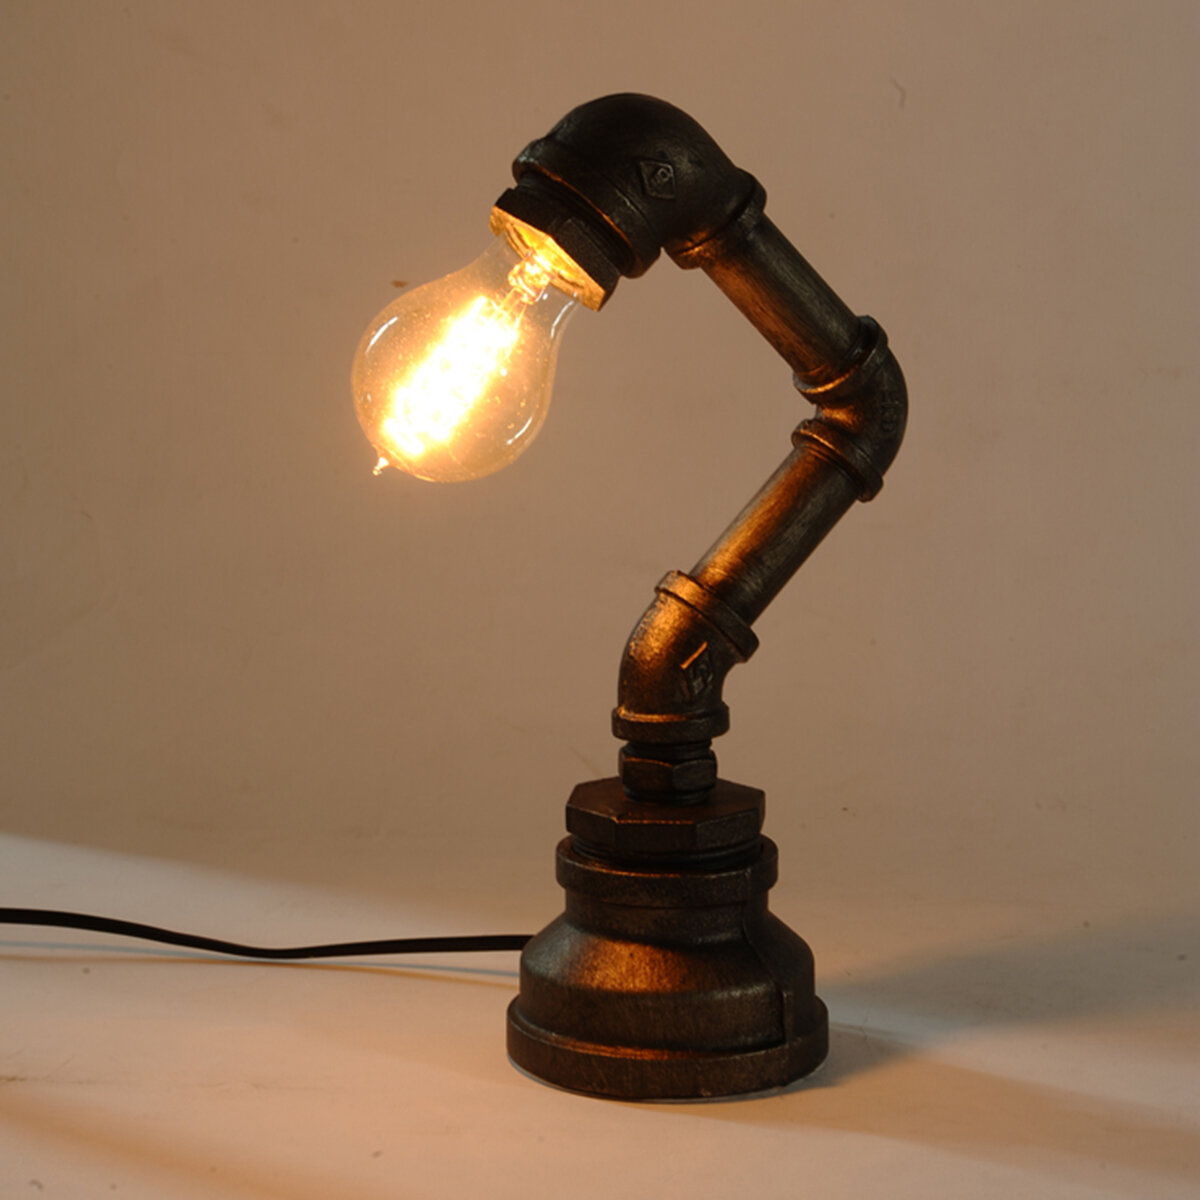 E27 Vintage Industrial Retro Iron Pipe Table Desk Lamp Light AC110-240V, Banggood  - buy with discount